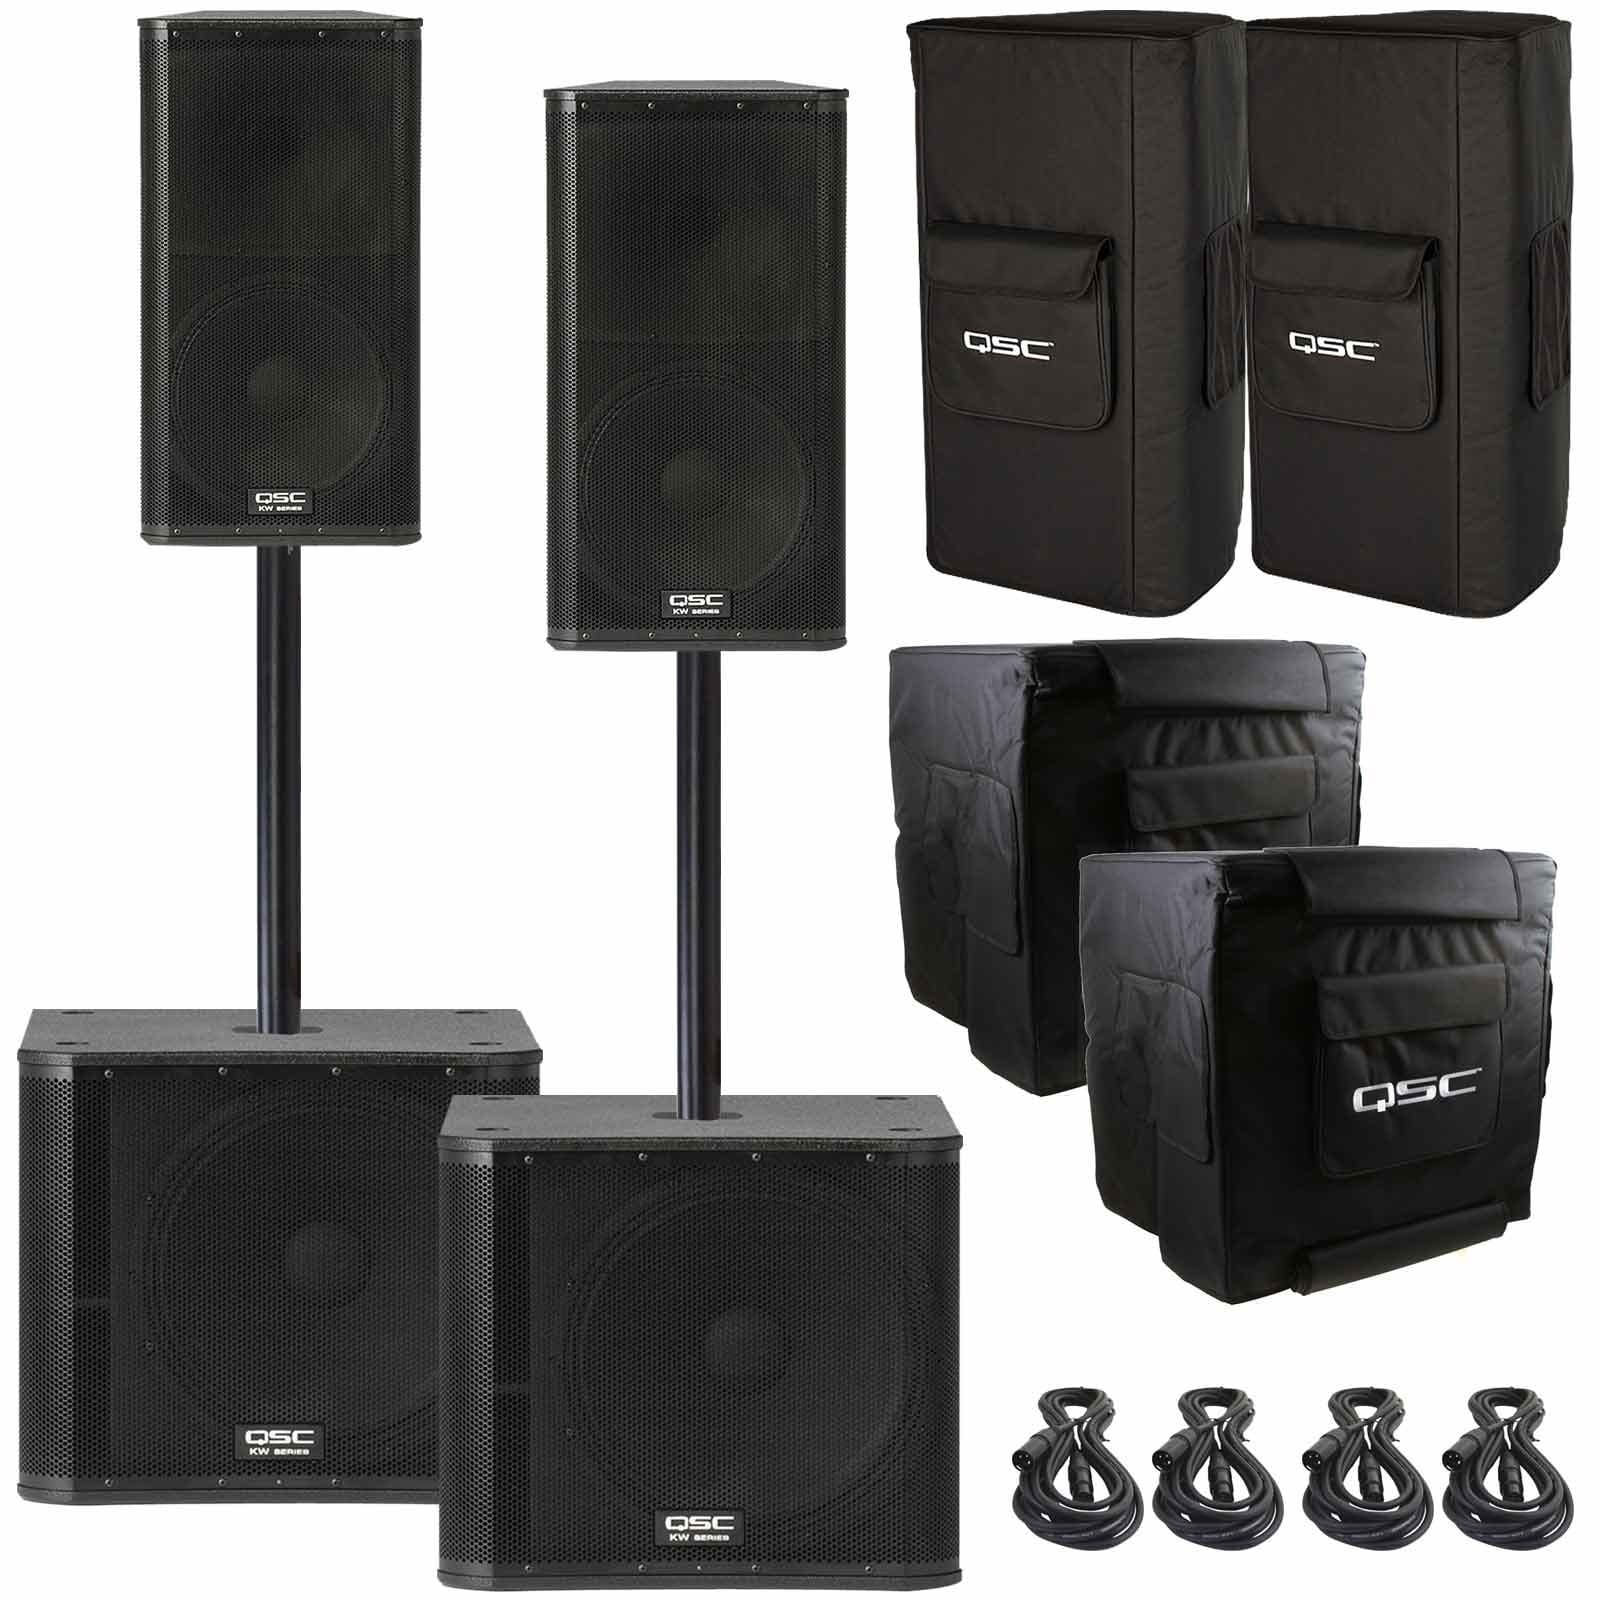 2 Qsc Kw152 Way Multipurpose Active Speakers With 15 Woofers And Daisy Chain Wiring Diagram